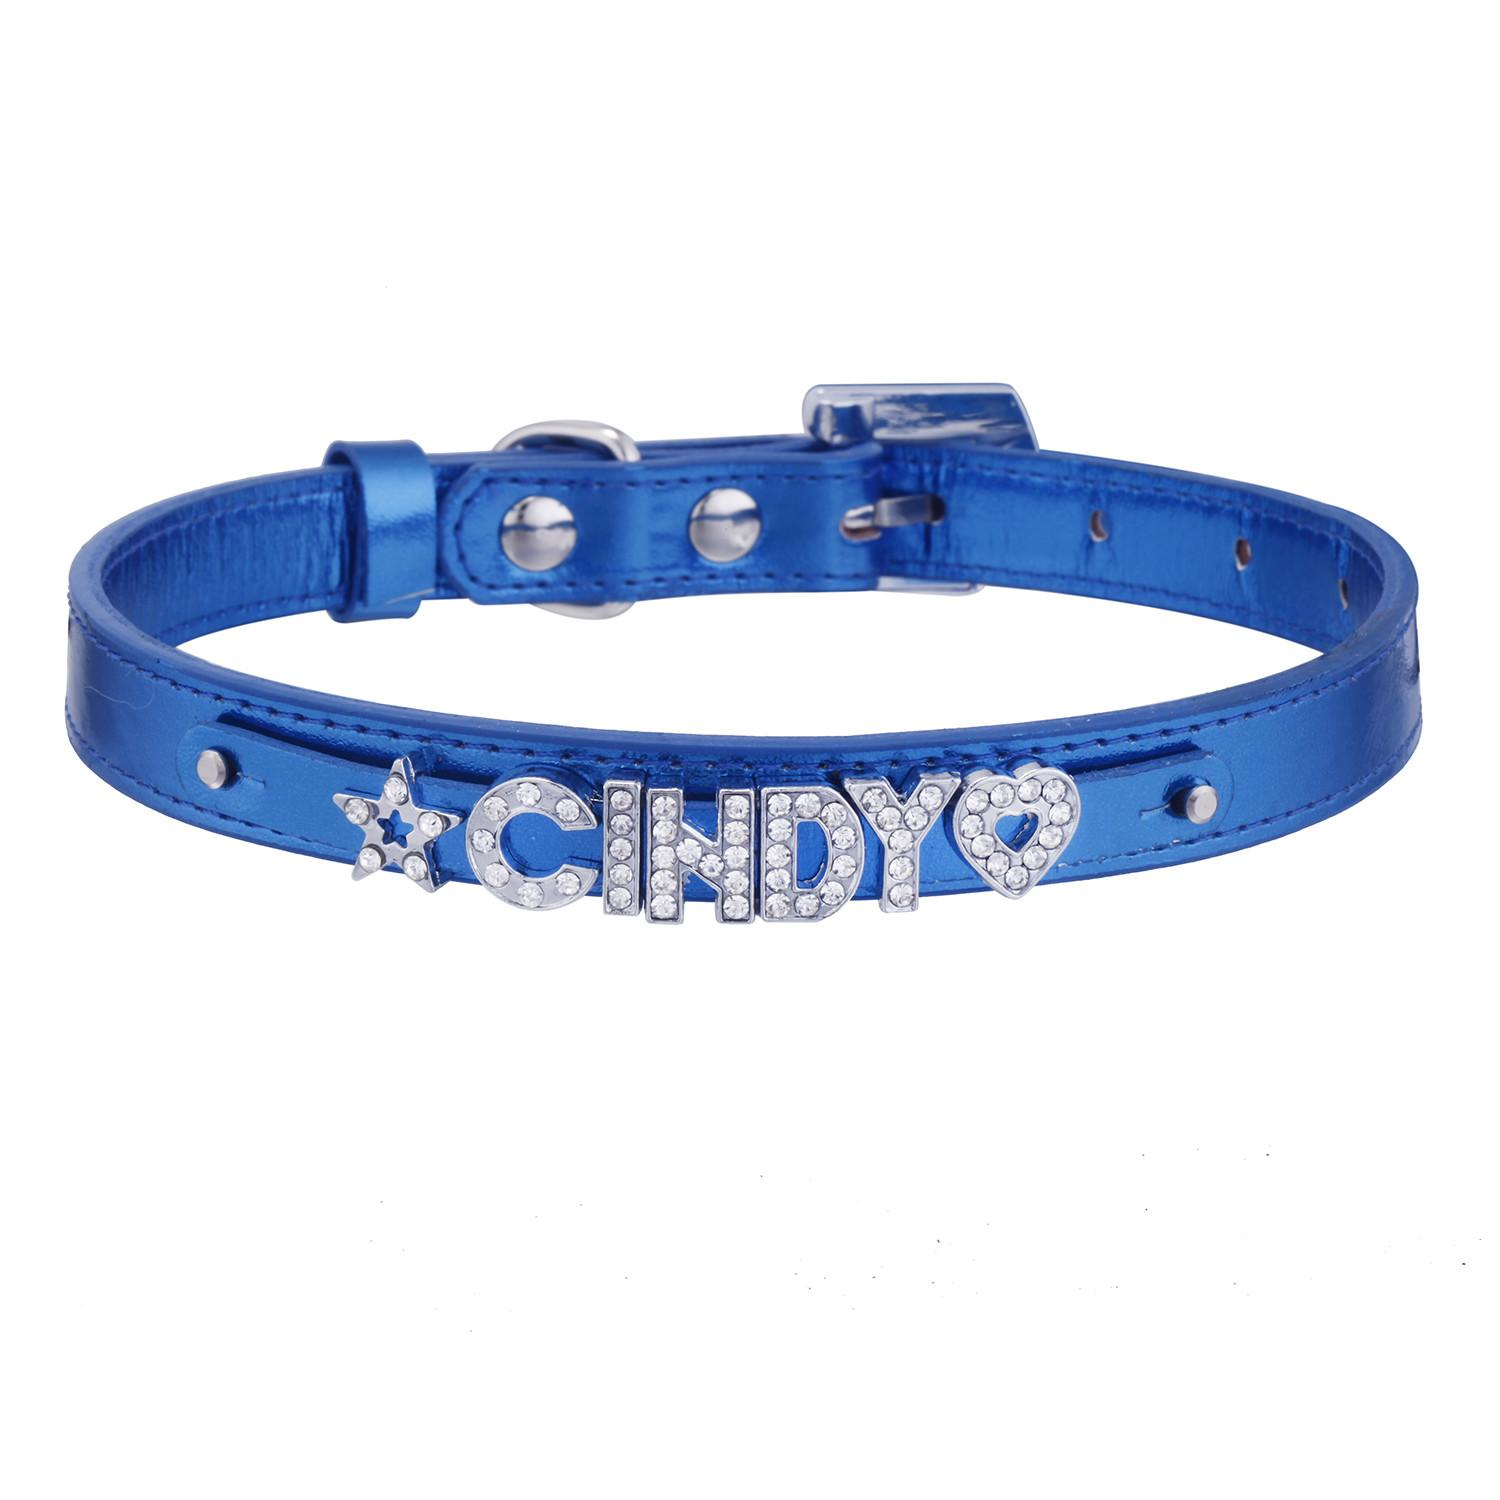 Personalized Diy Leather Pet Puppy Dog Cat Collar